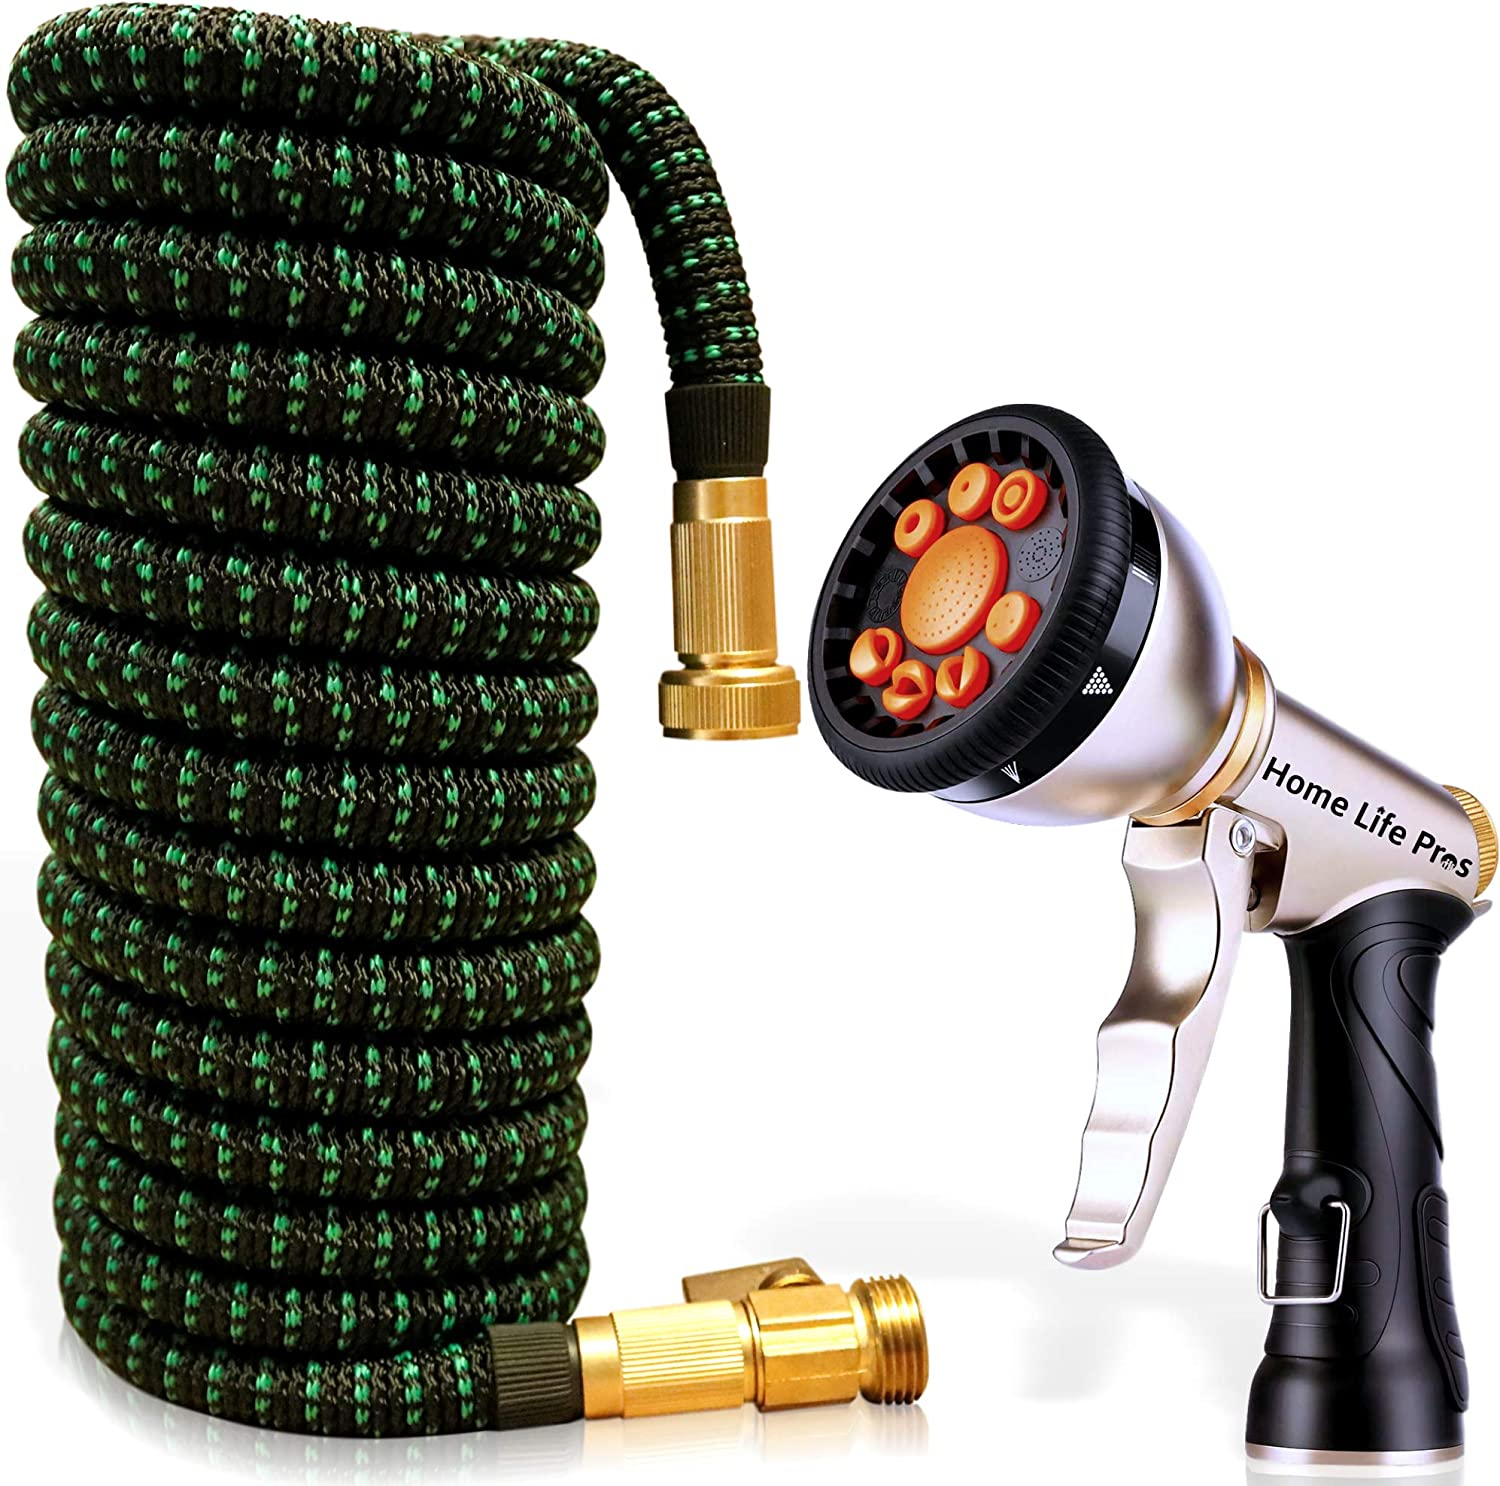 Expandable Garden Hose 50FT Heavy Duty No-Kink Compact Lightweight Waterhose Outdoor Lawn Shrinking Water Hose Expanding 50 FT Car Wash 3/4 Retractable Collapsible Non-Kinking Watering Hose